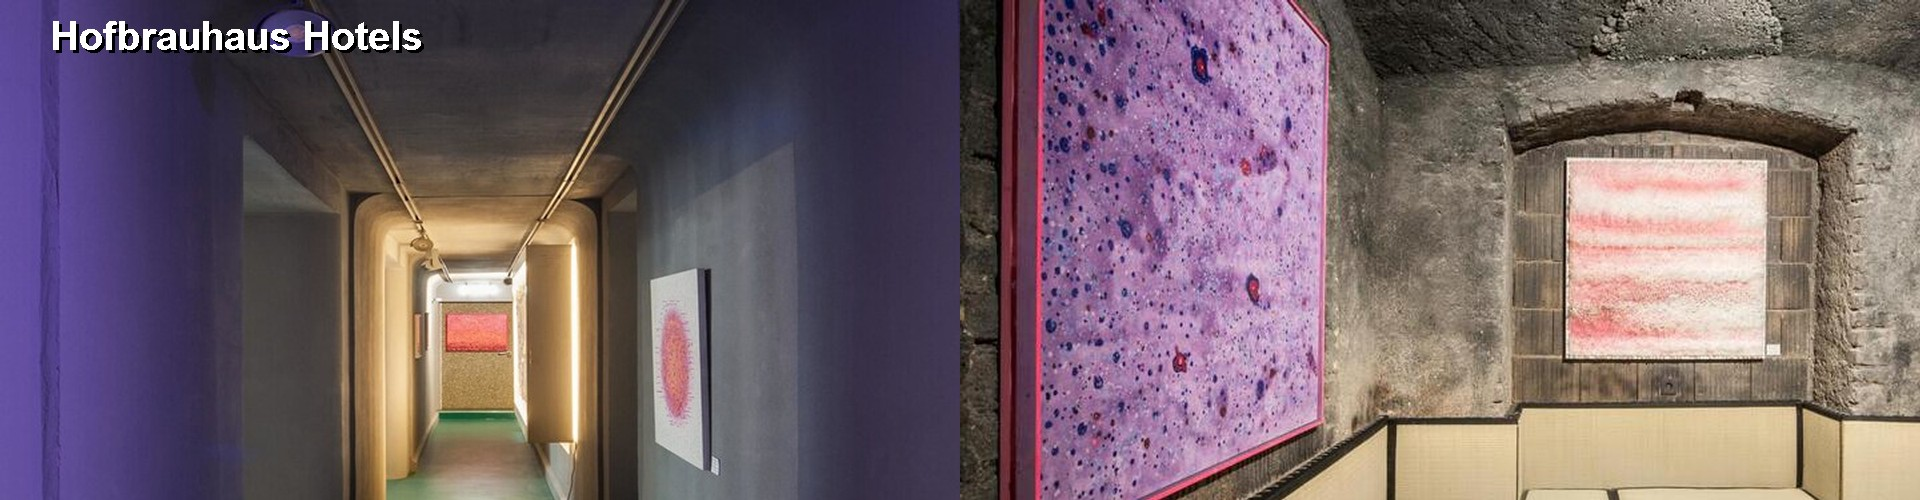 5 Best Hotels near Hofbrauhaus